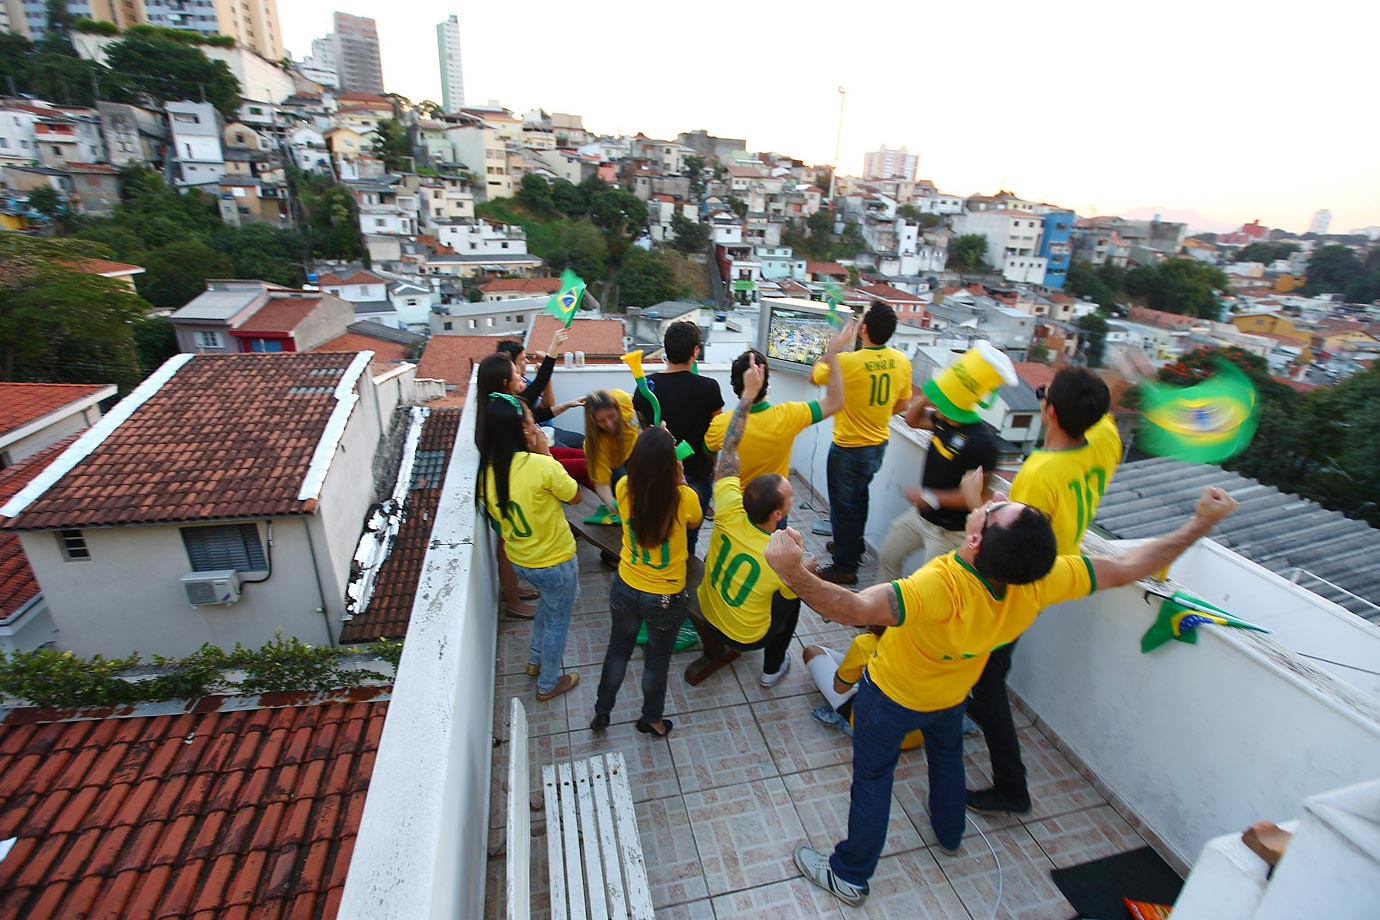 SI photographer Simon Bruty is in Brazil for the World Cup.   Here are some of his best photos.